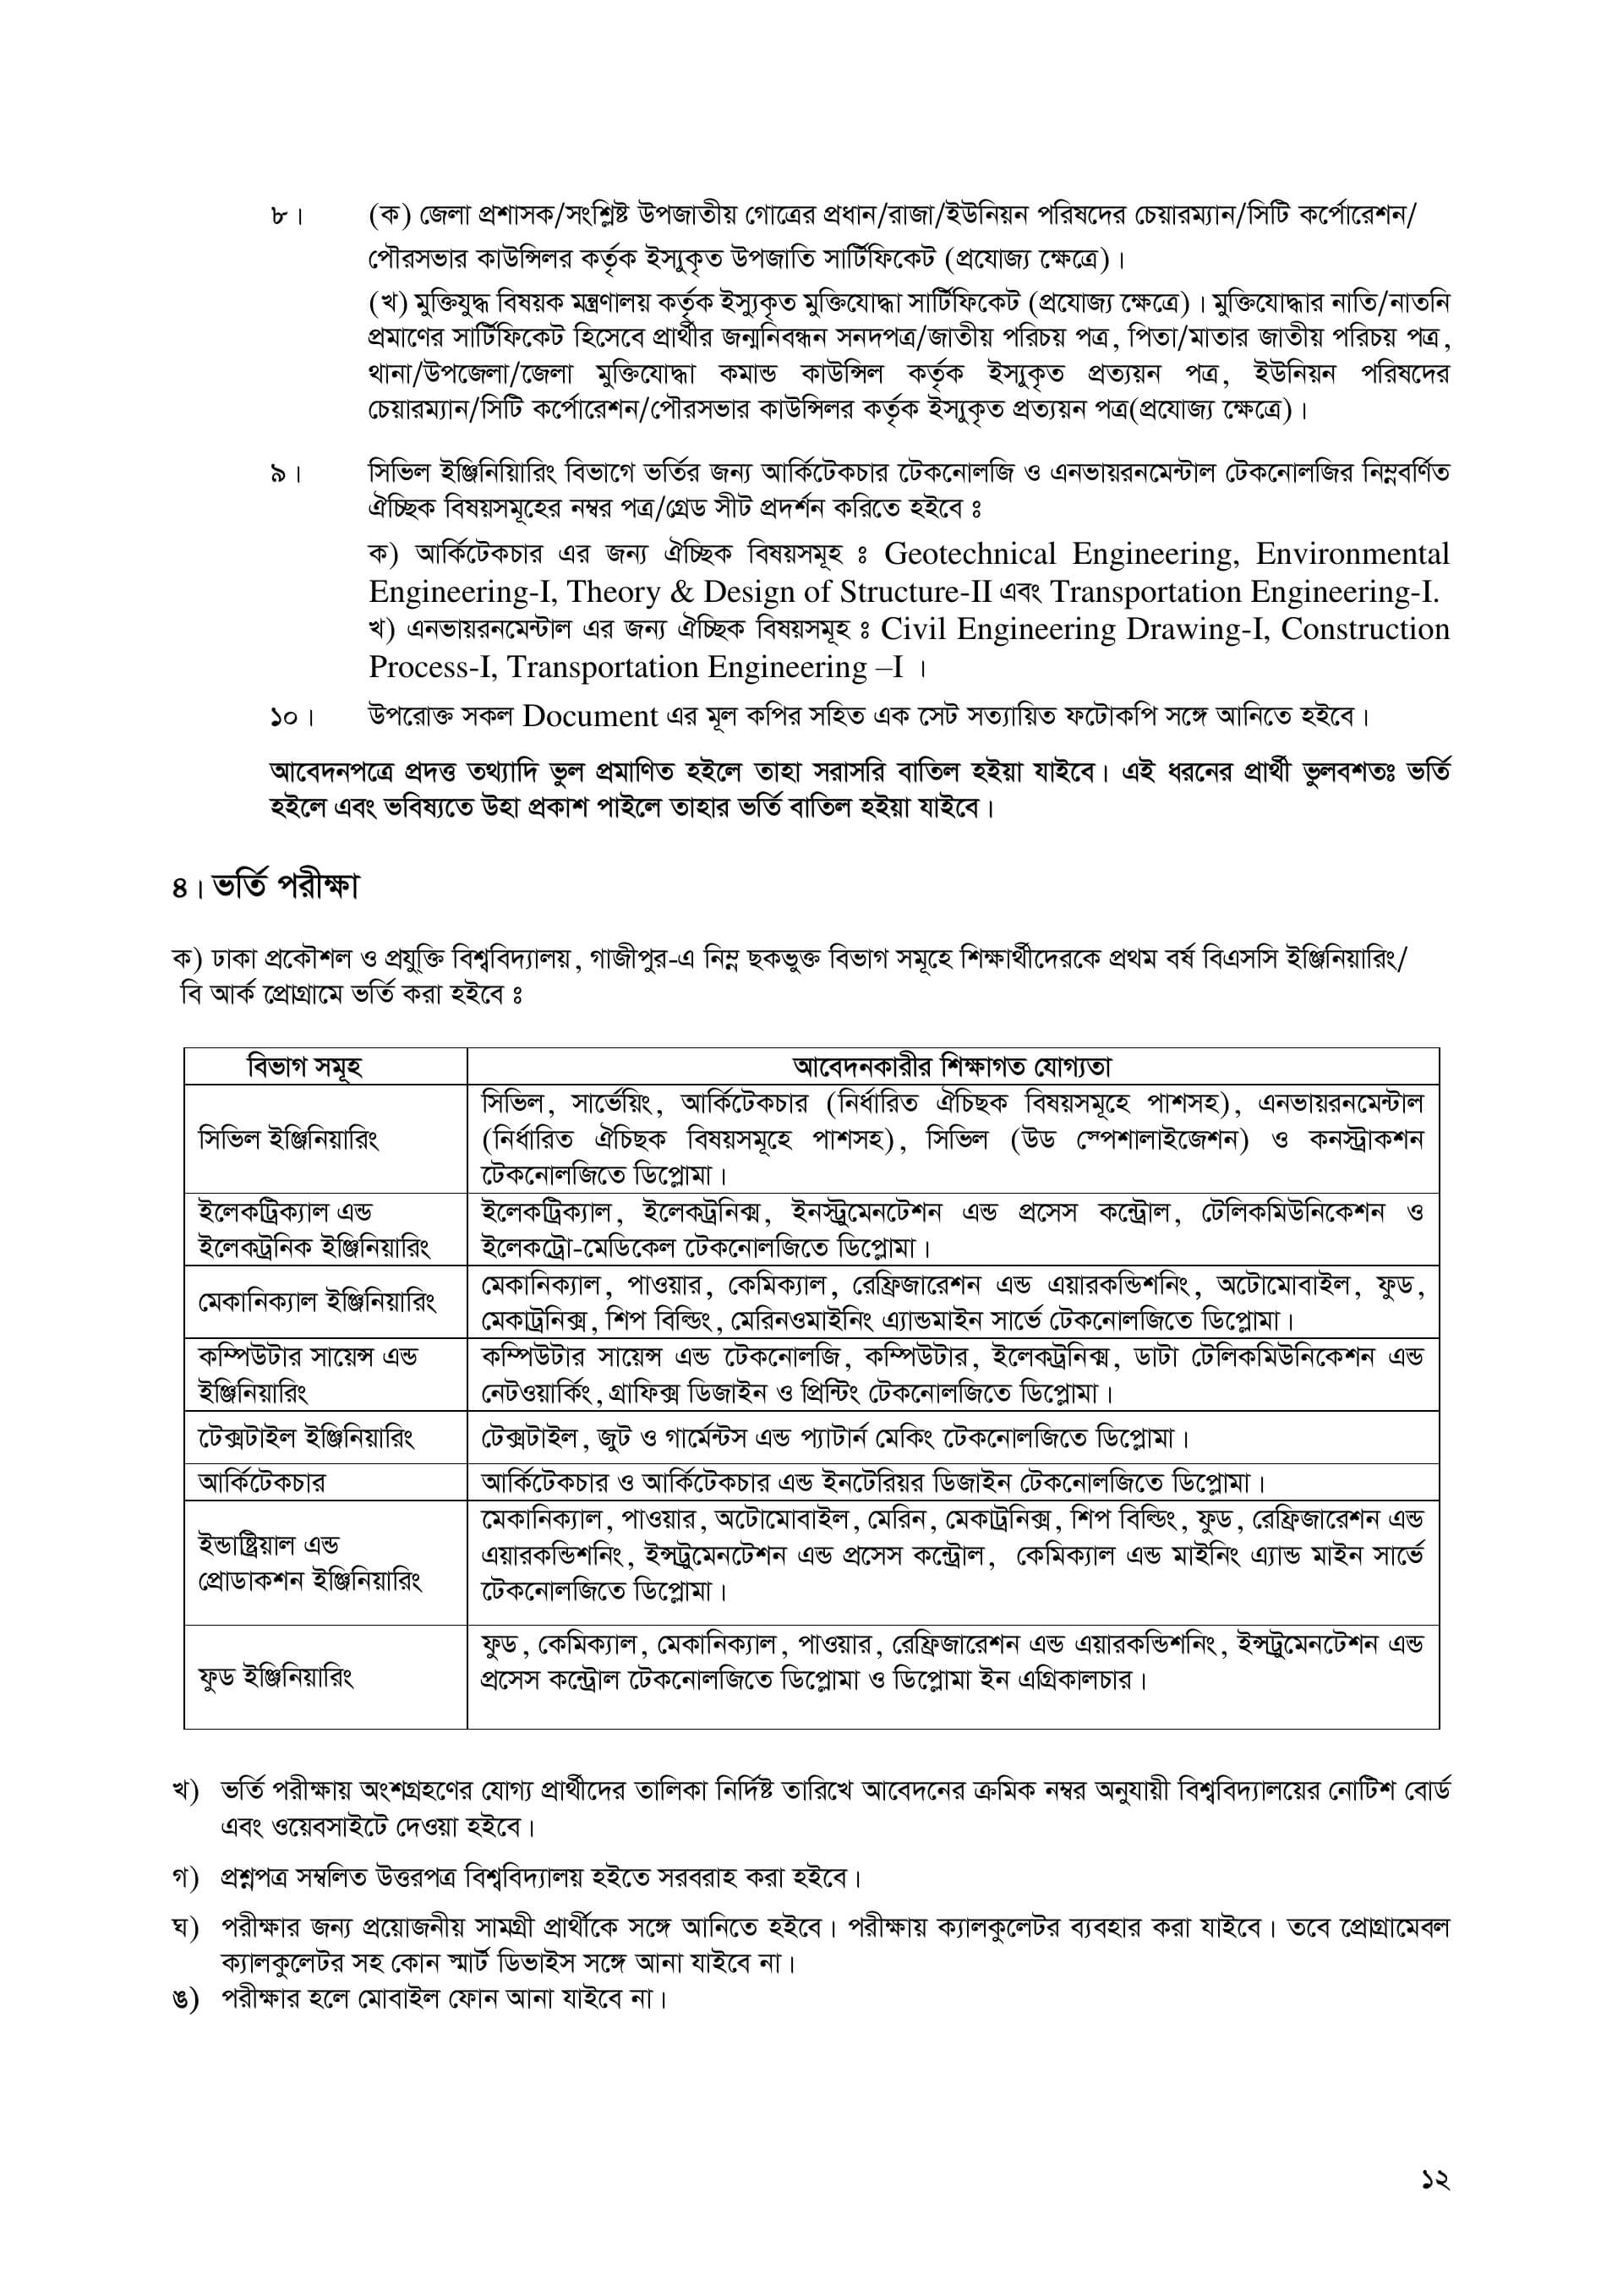 DUET Admission guideline-12